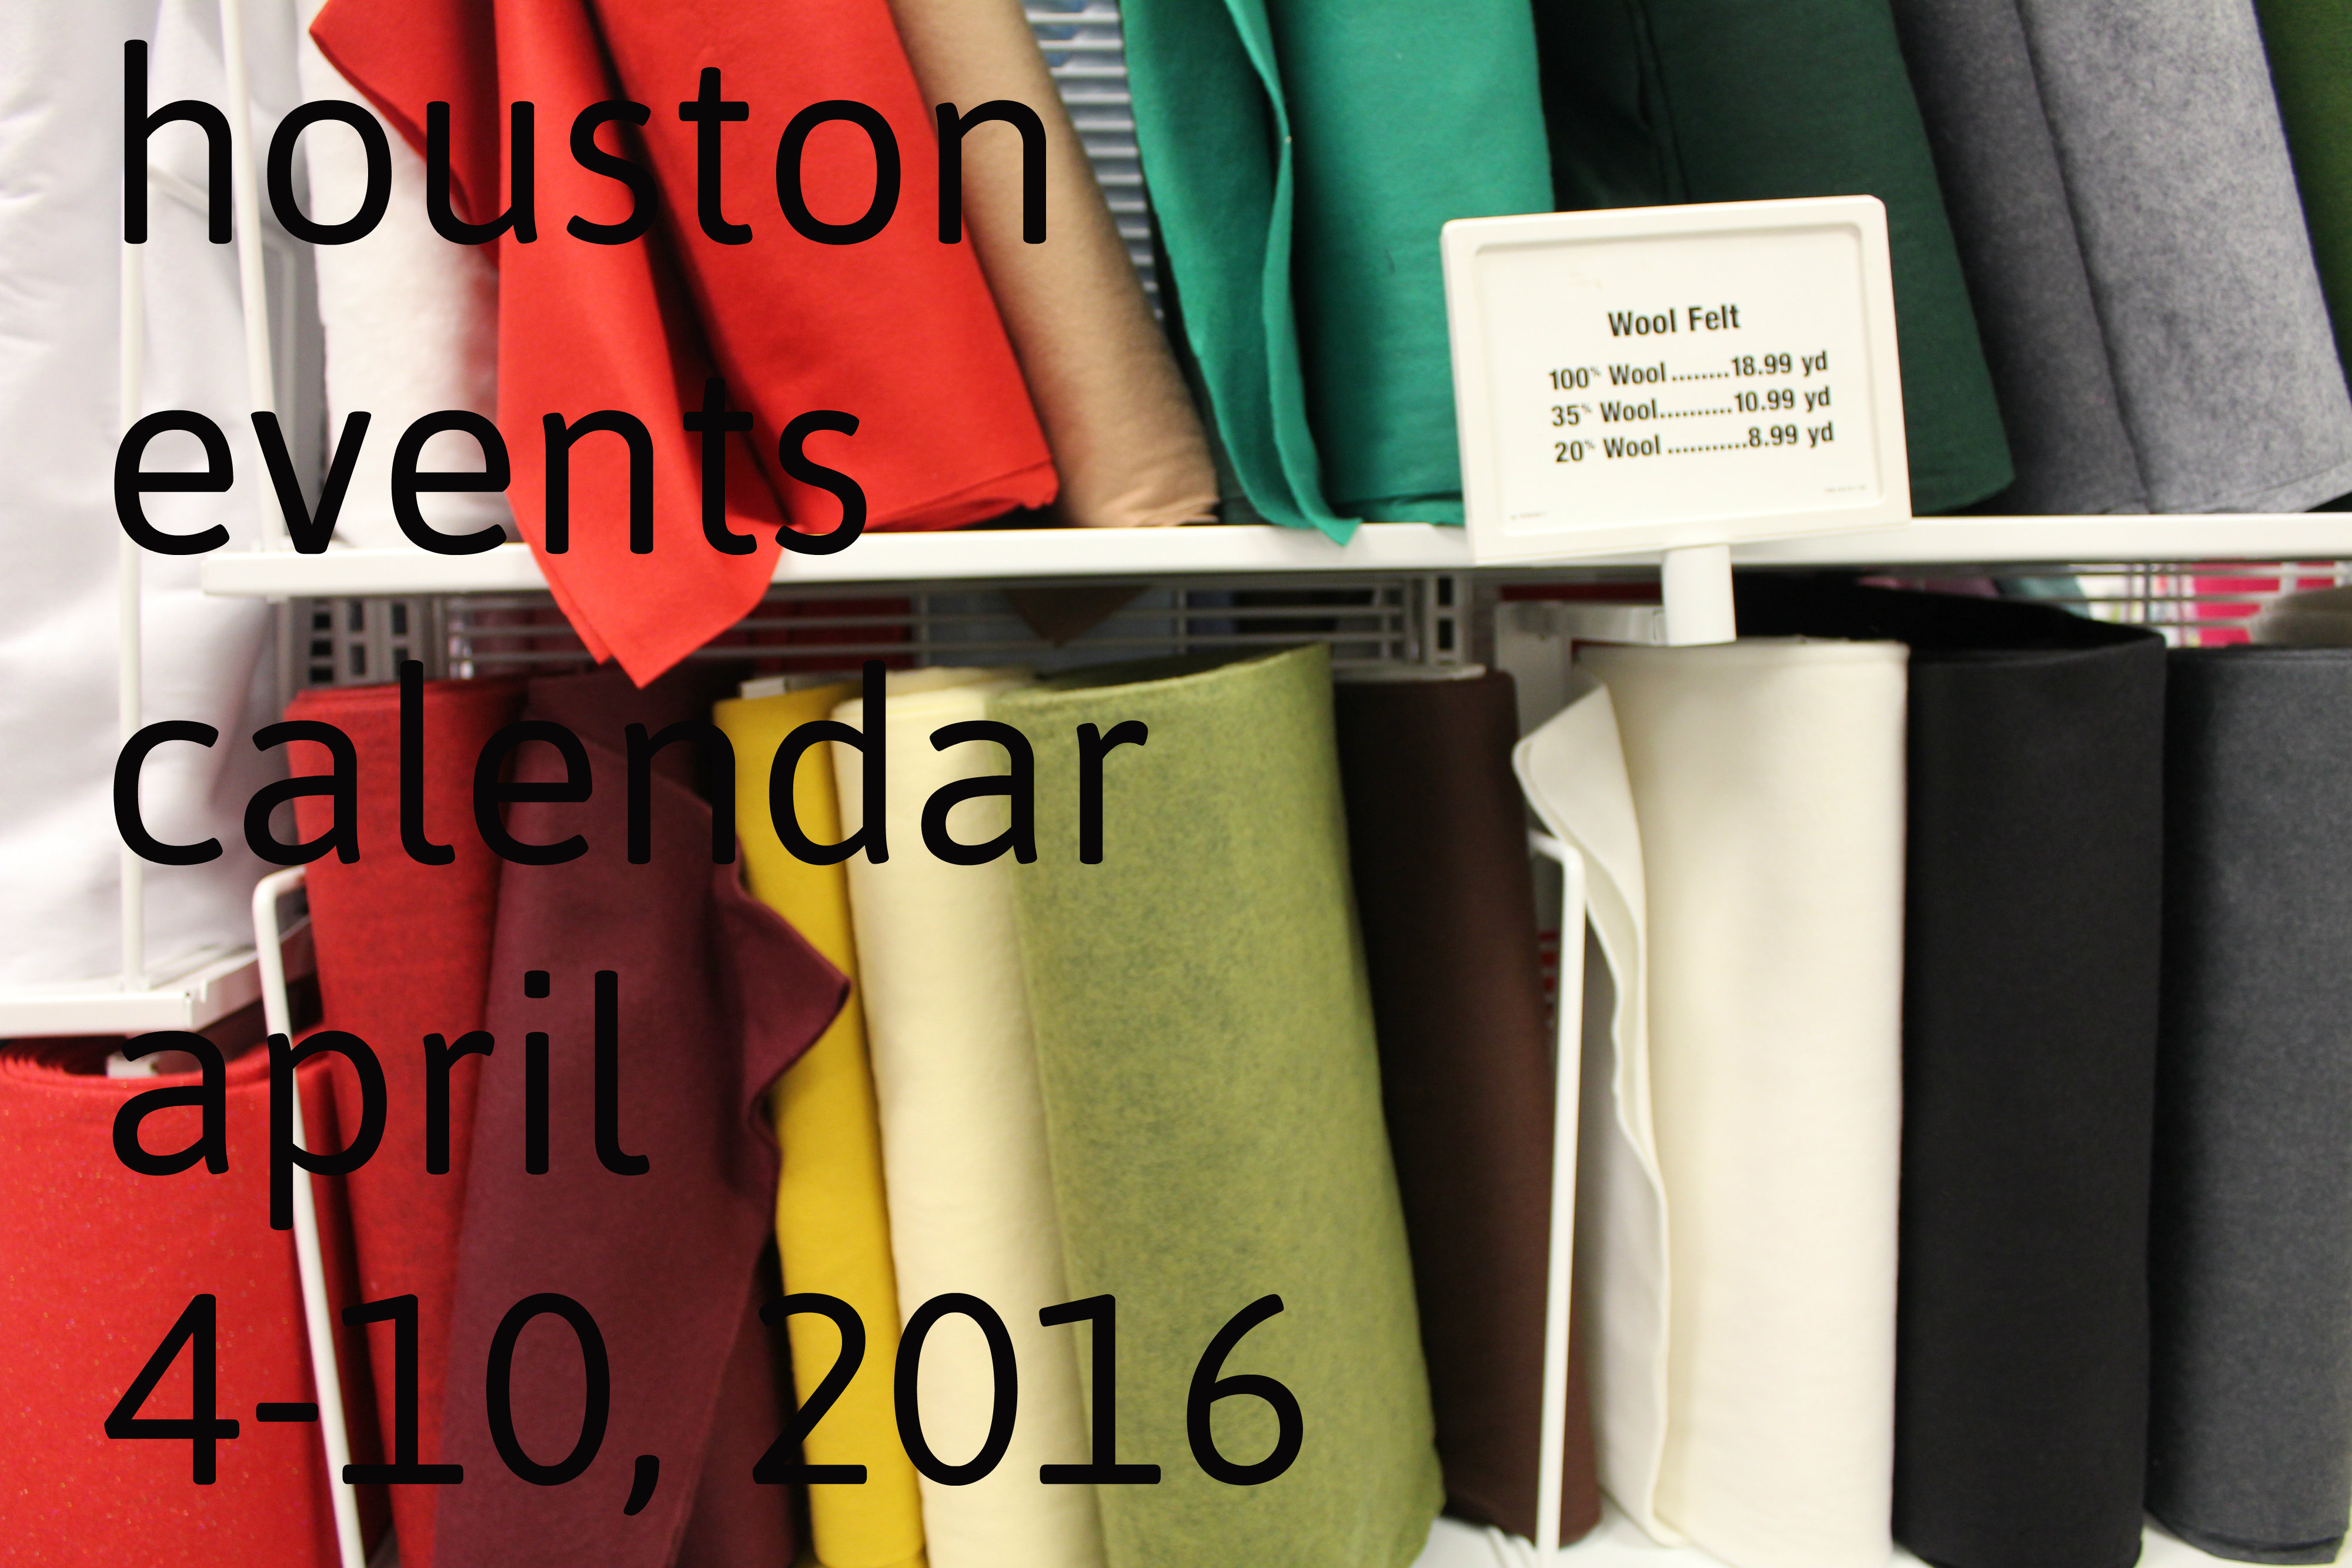 April Calendar Houston : Houston events calendar april pancho and